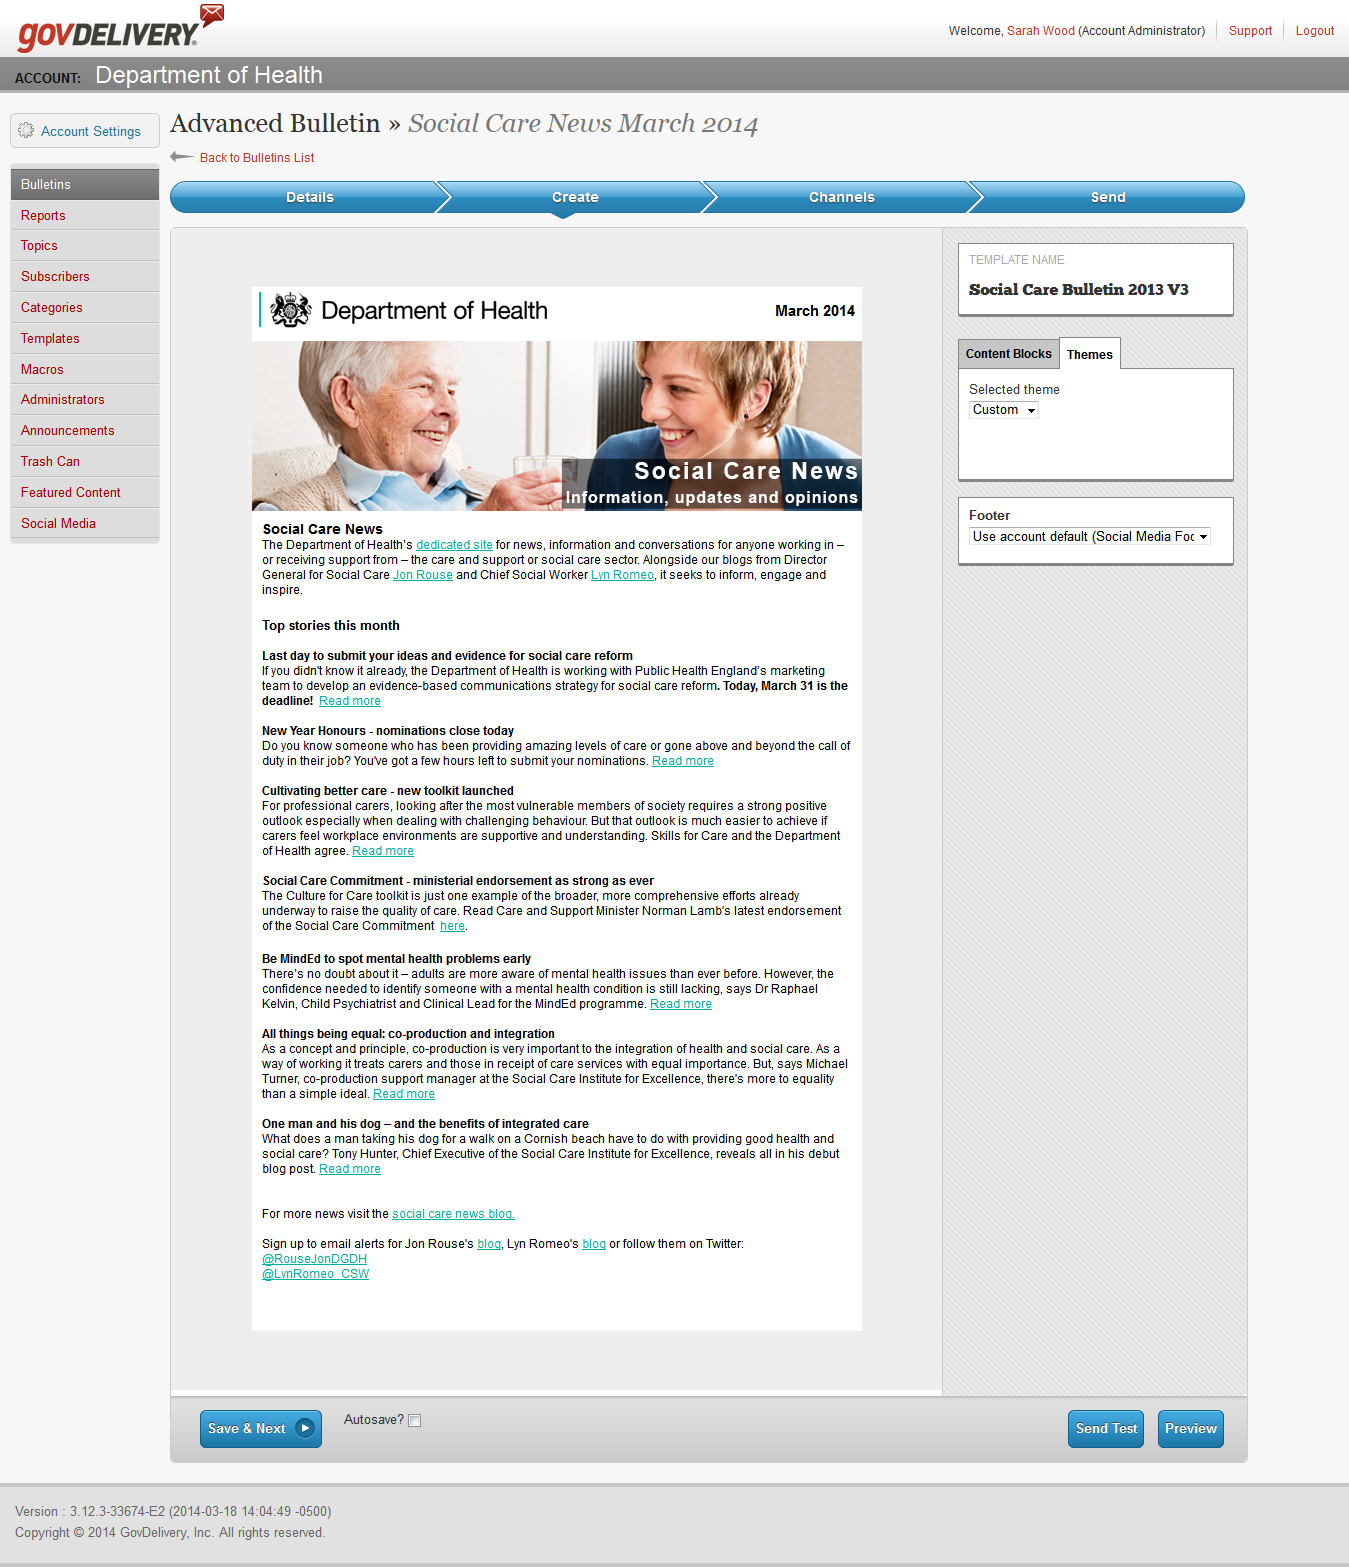 Social care e-newsletter screenshot